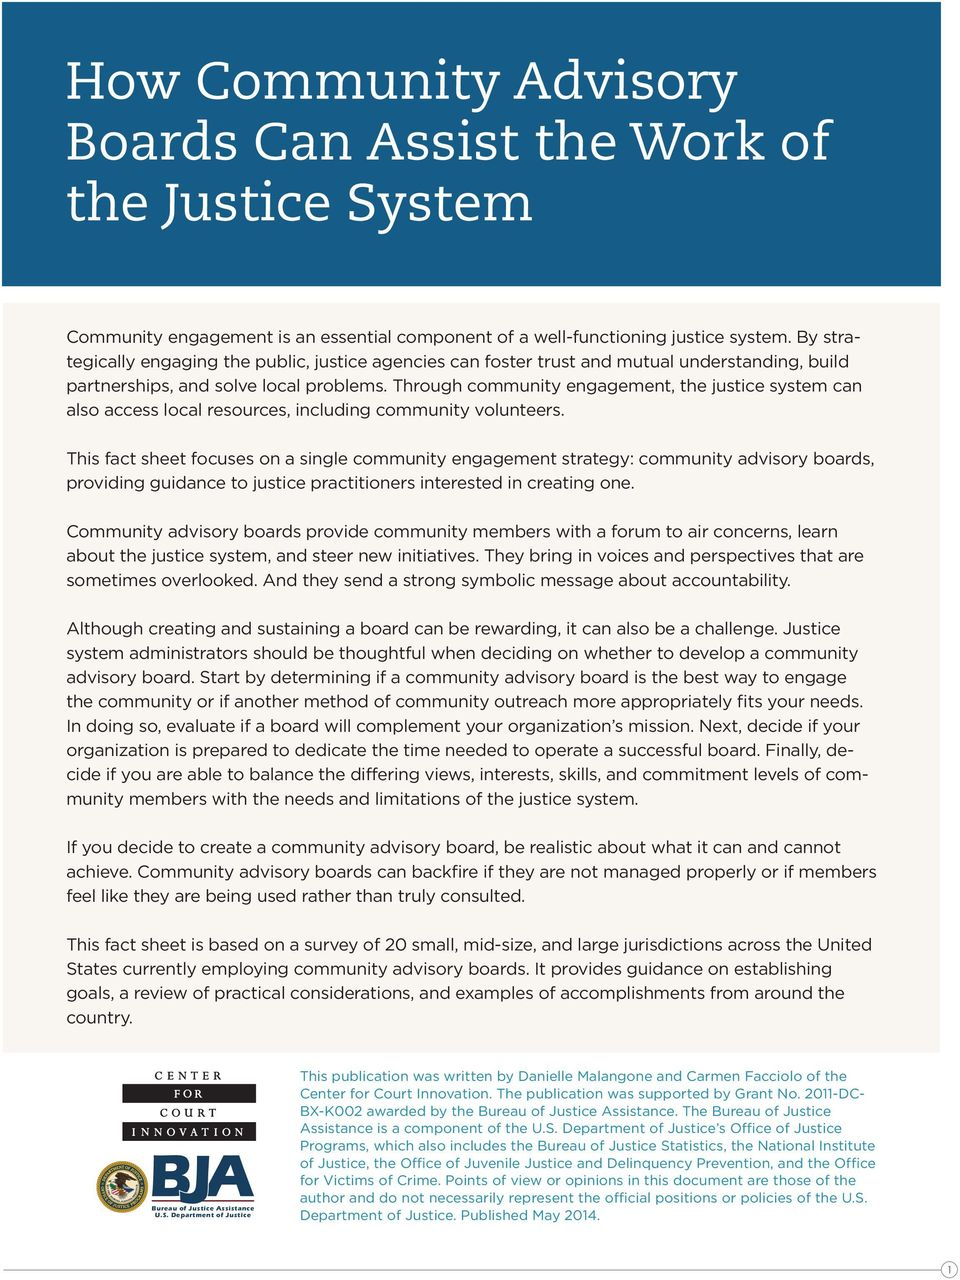 Through community engagement, the justice system can also access local resources, including community volunteers.